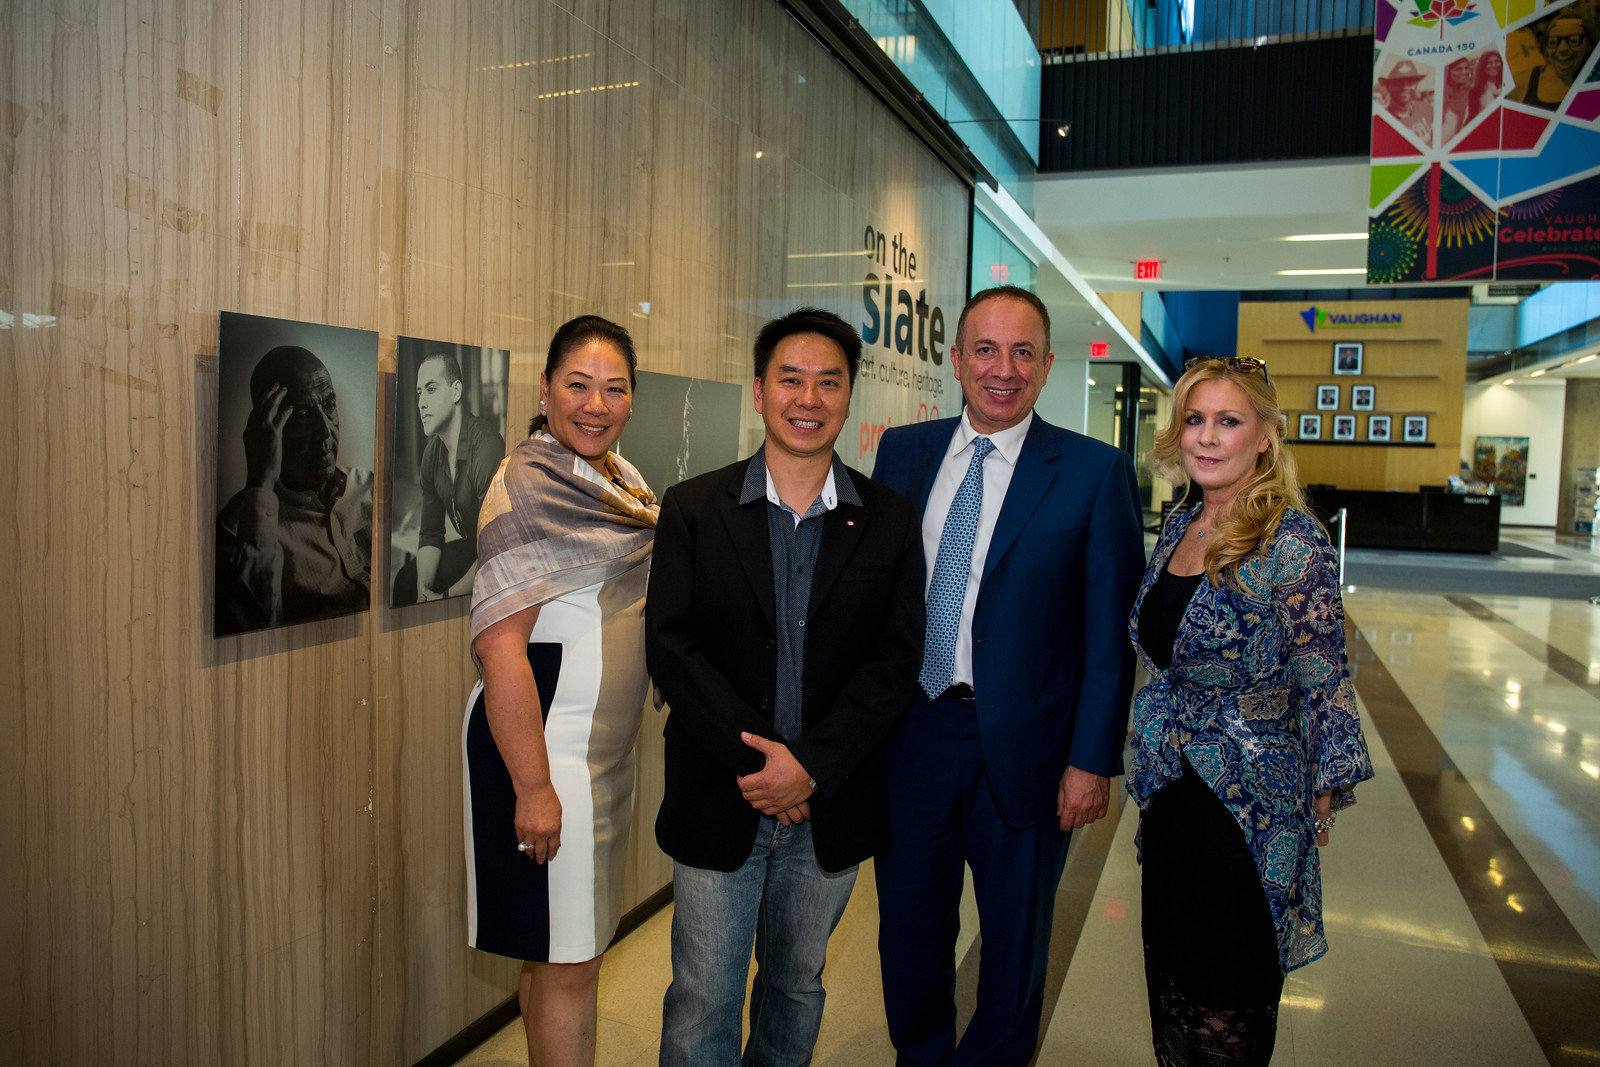 Canada 150th Photo Exhibition   Project 99  Vaughan City Hall   May 25 - Aug 25, 2017